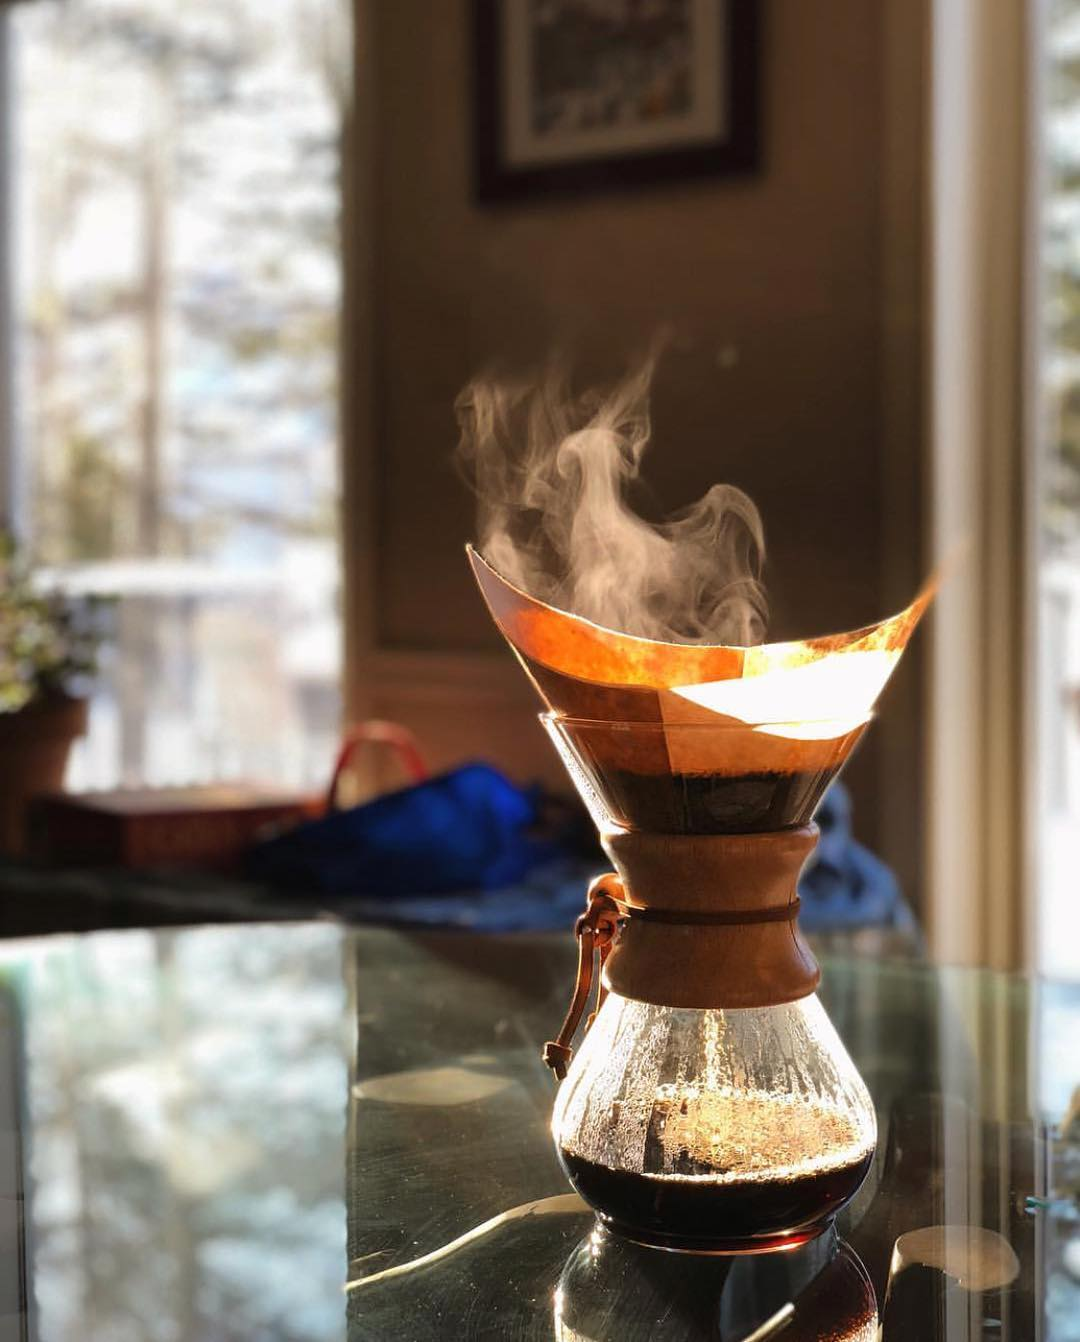 pour over container with coffee in it and steam on the kitchen counter